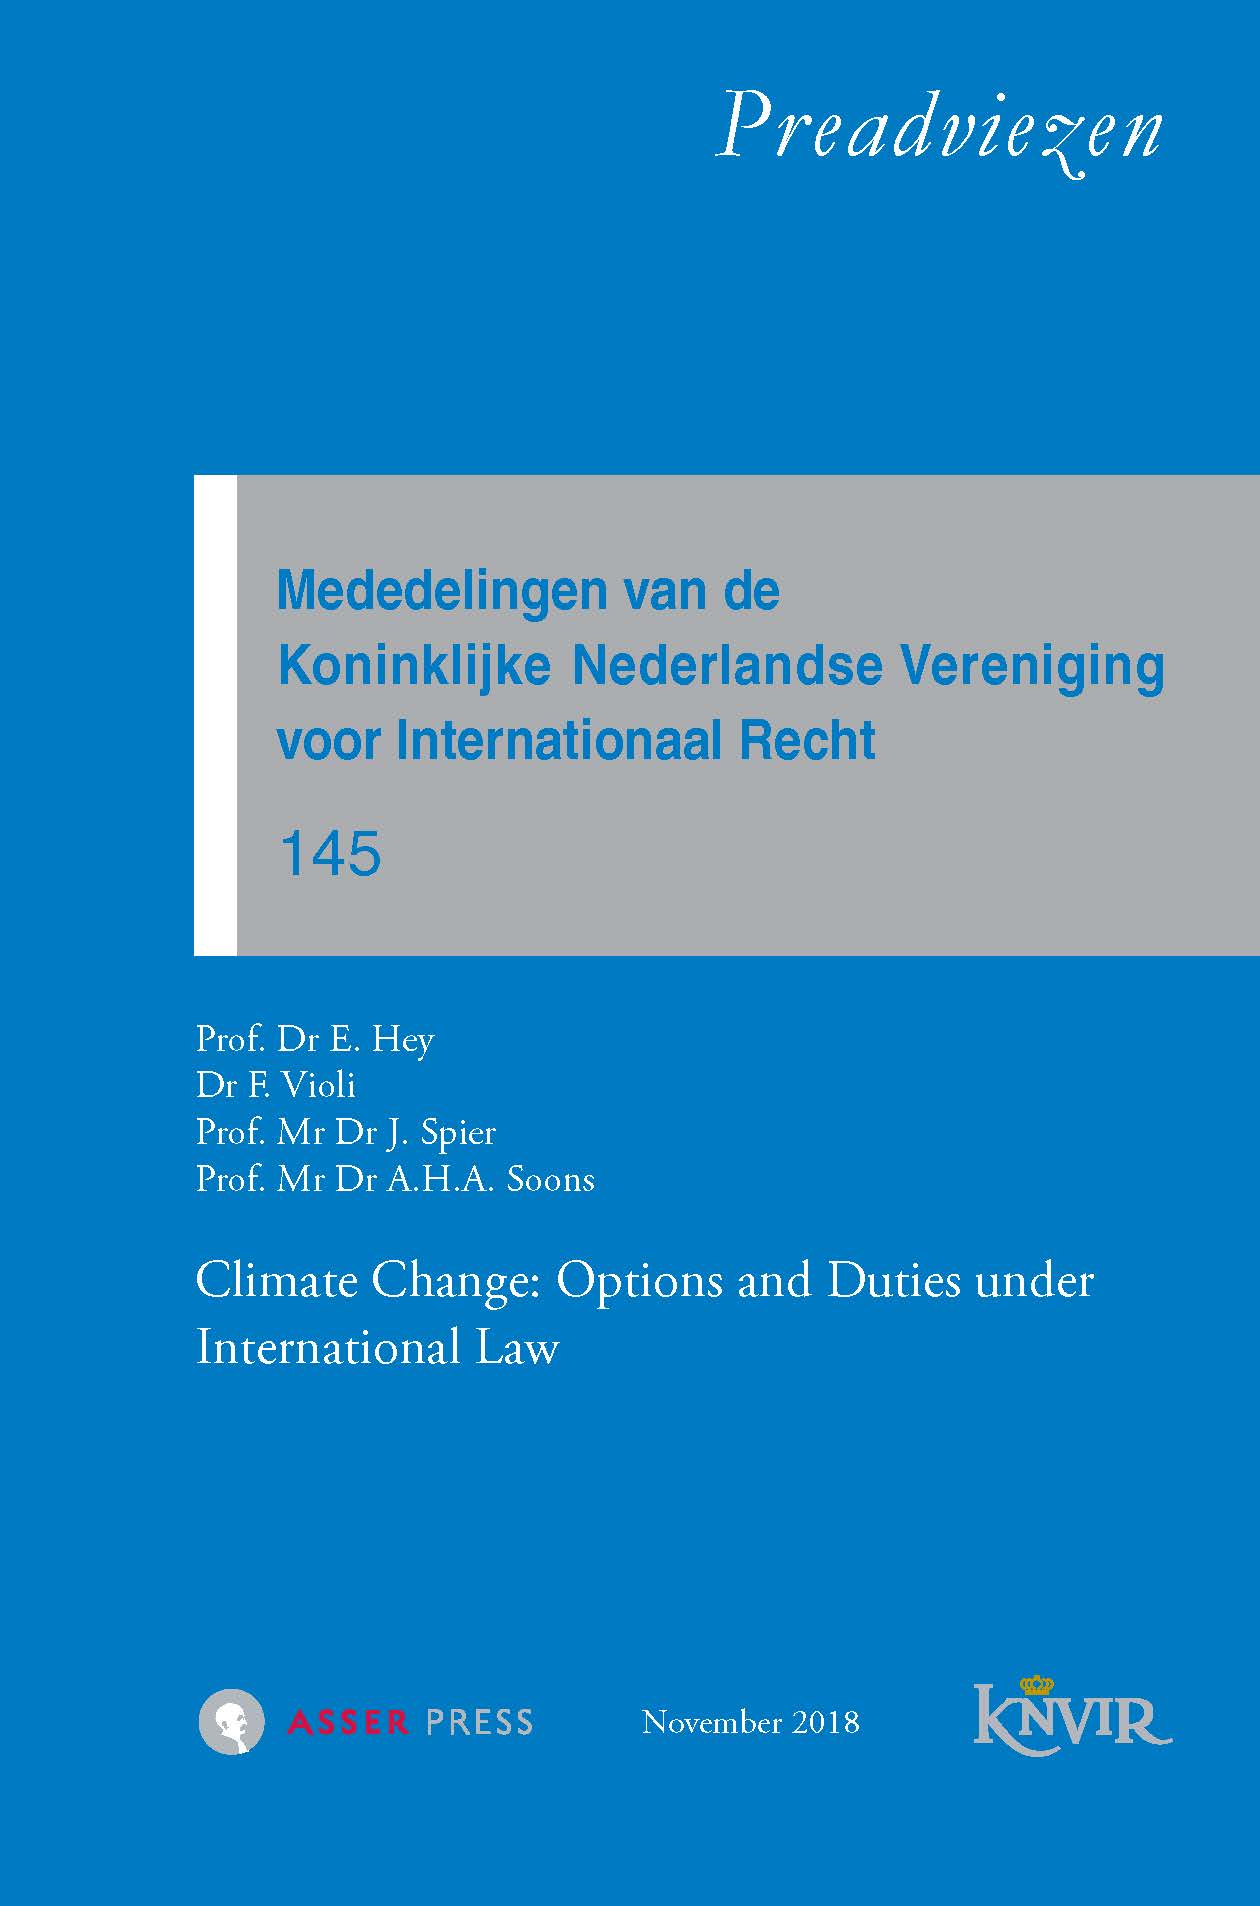 Mededelingen van de Koninklijke Nederlandse Vereniging voor Internationaal Recht - nr 145 – Climate Change: Options and Duties under International Law